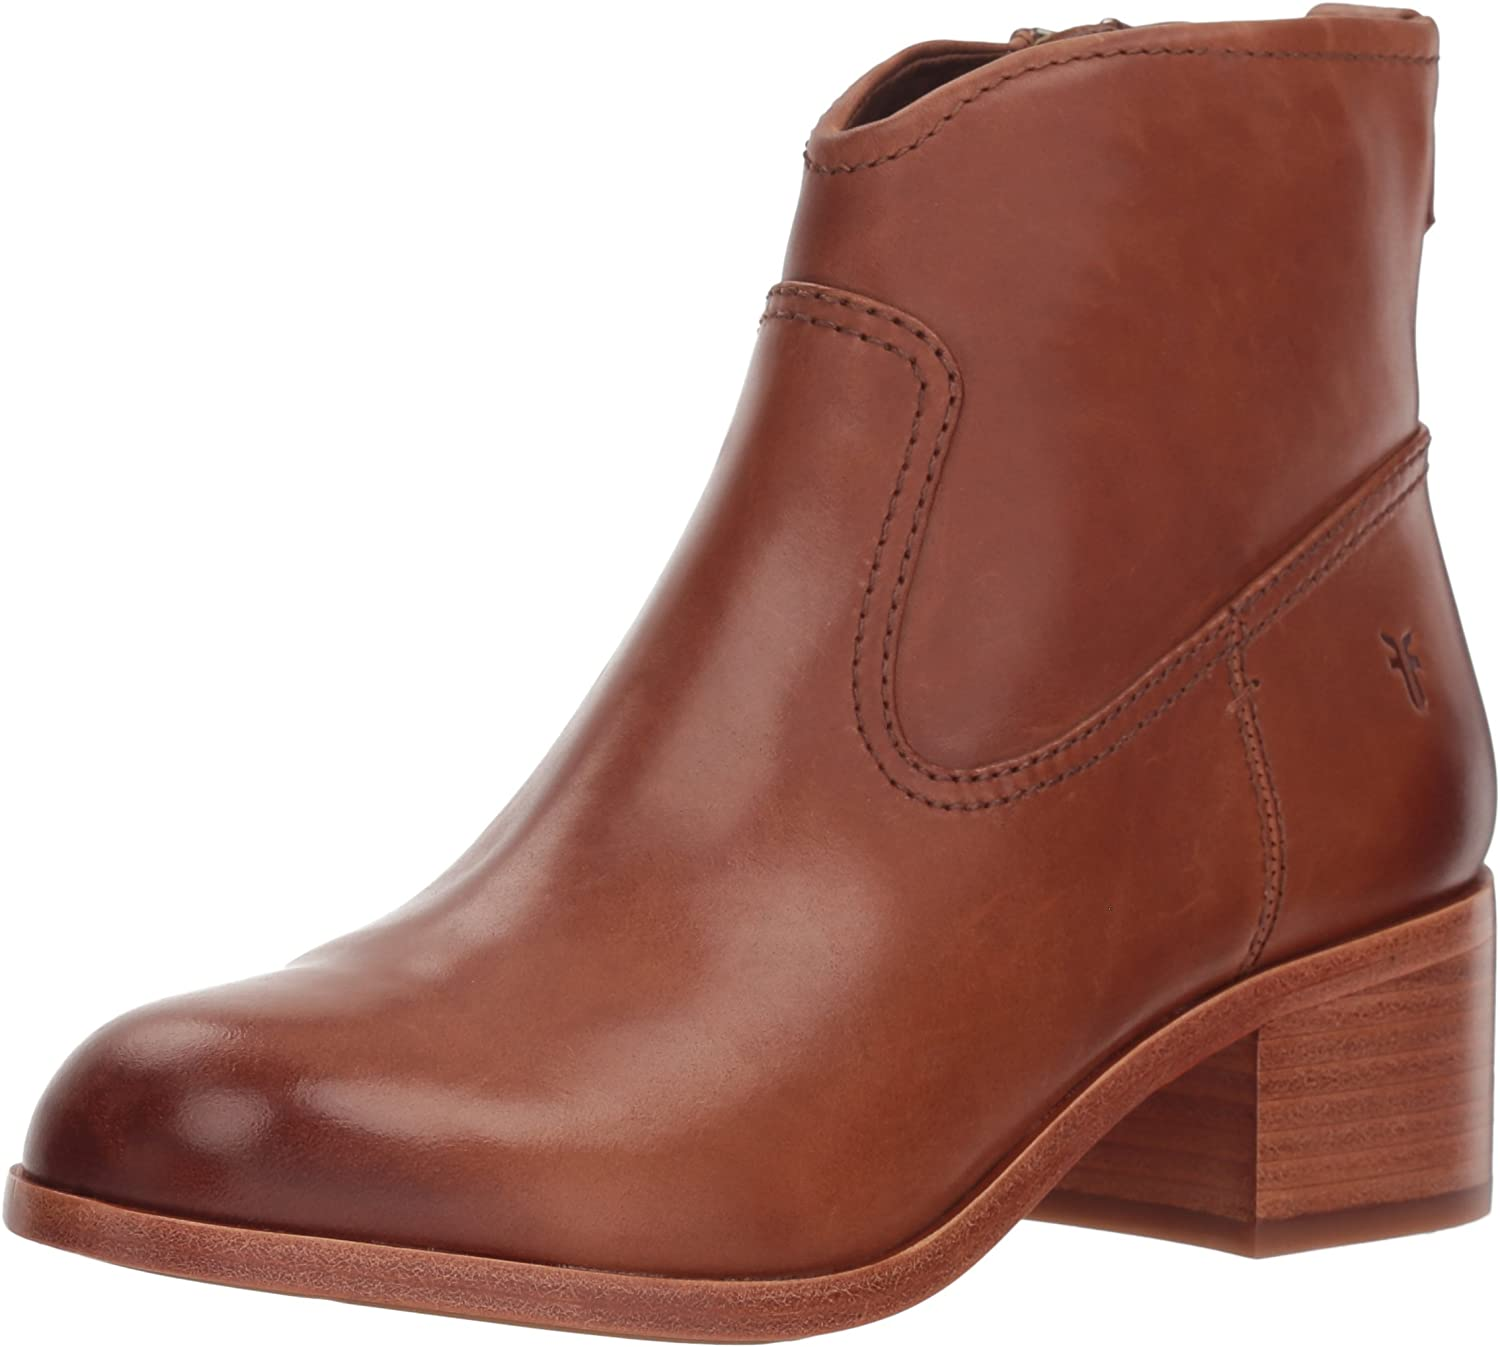 Frye Womens Claire Bootie Ankle Boot